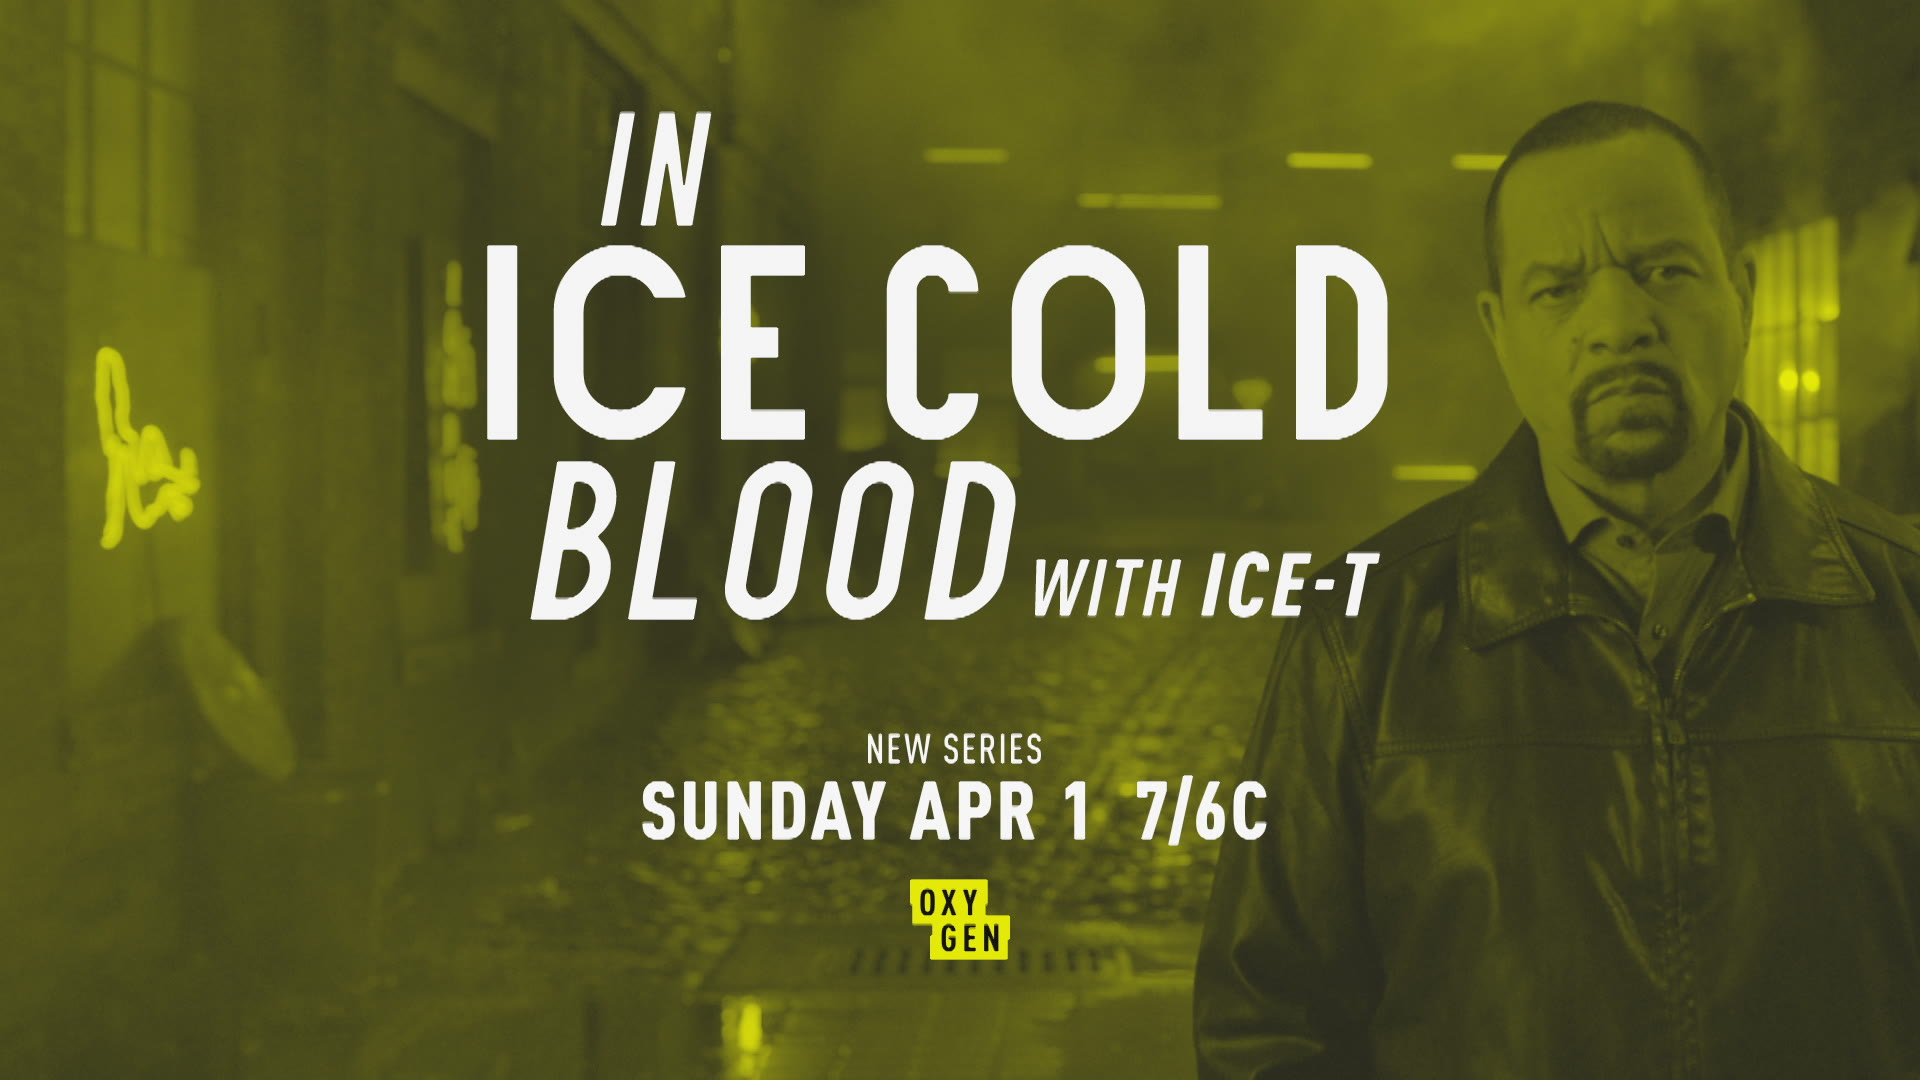 in ice cold blood' hosted by ice-t premieres april 1 at 7/6c | crime